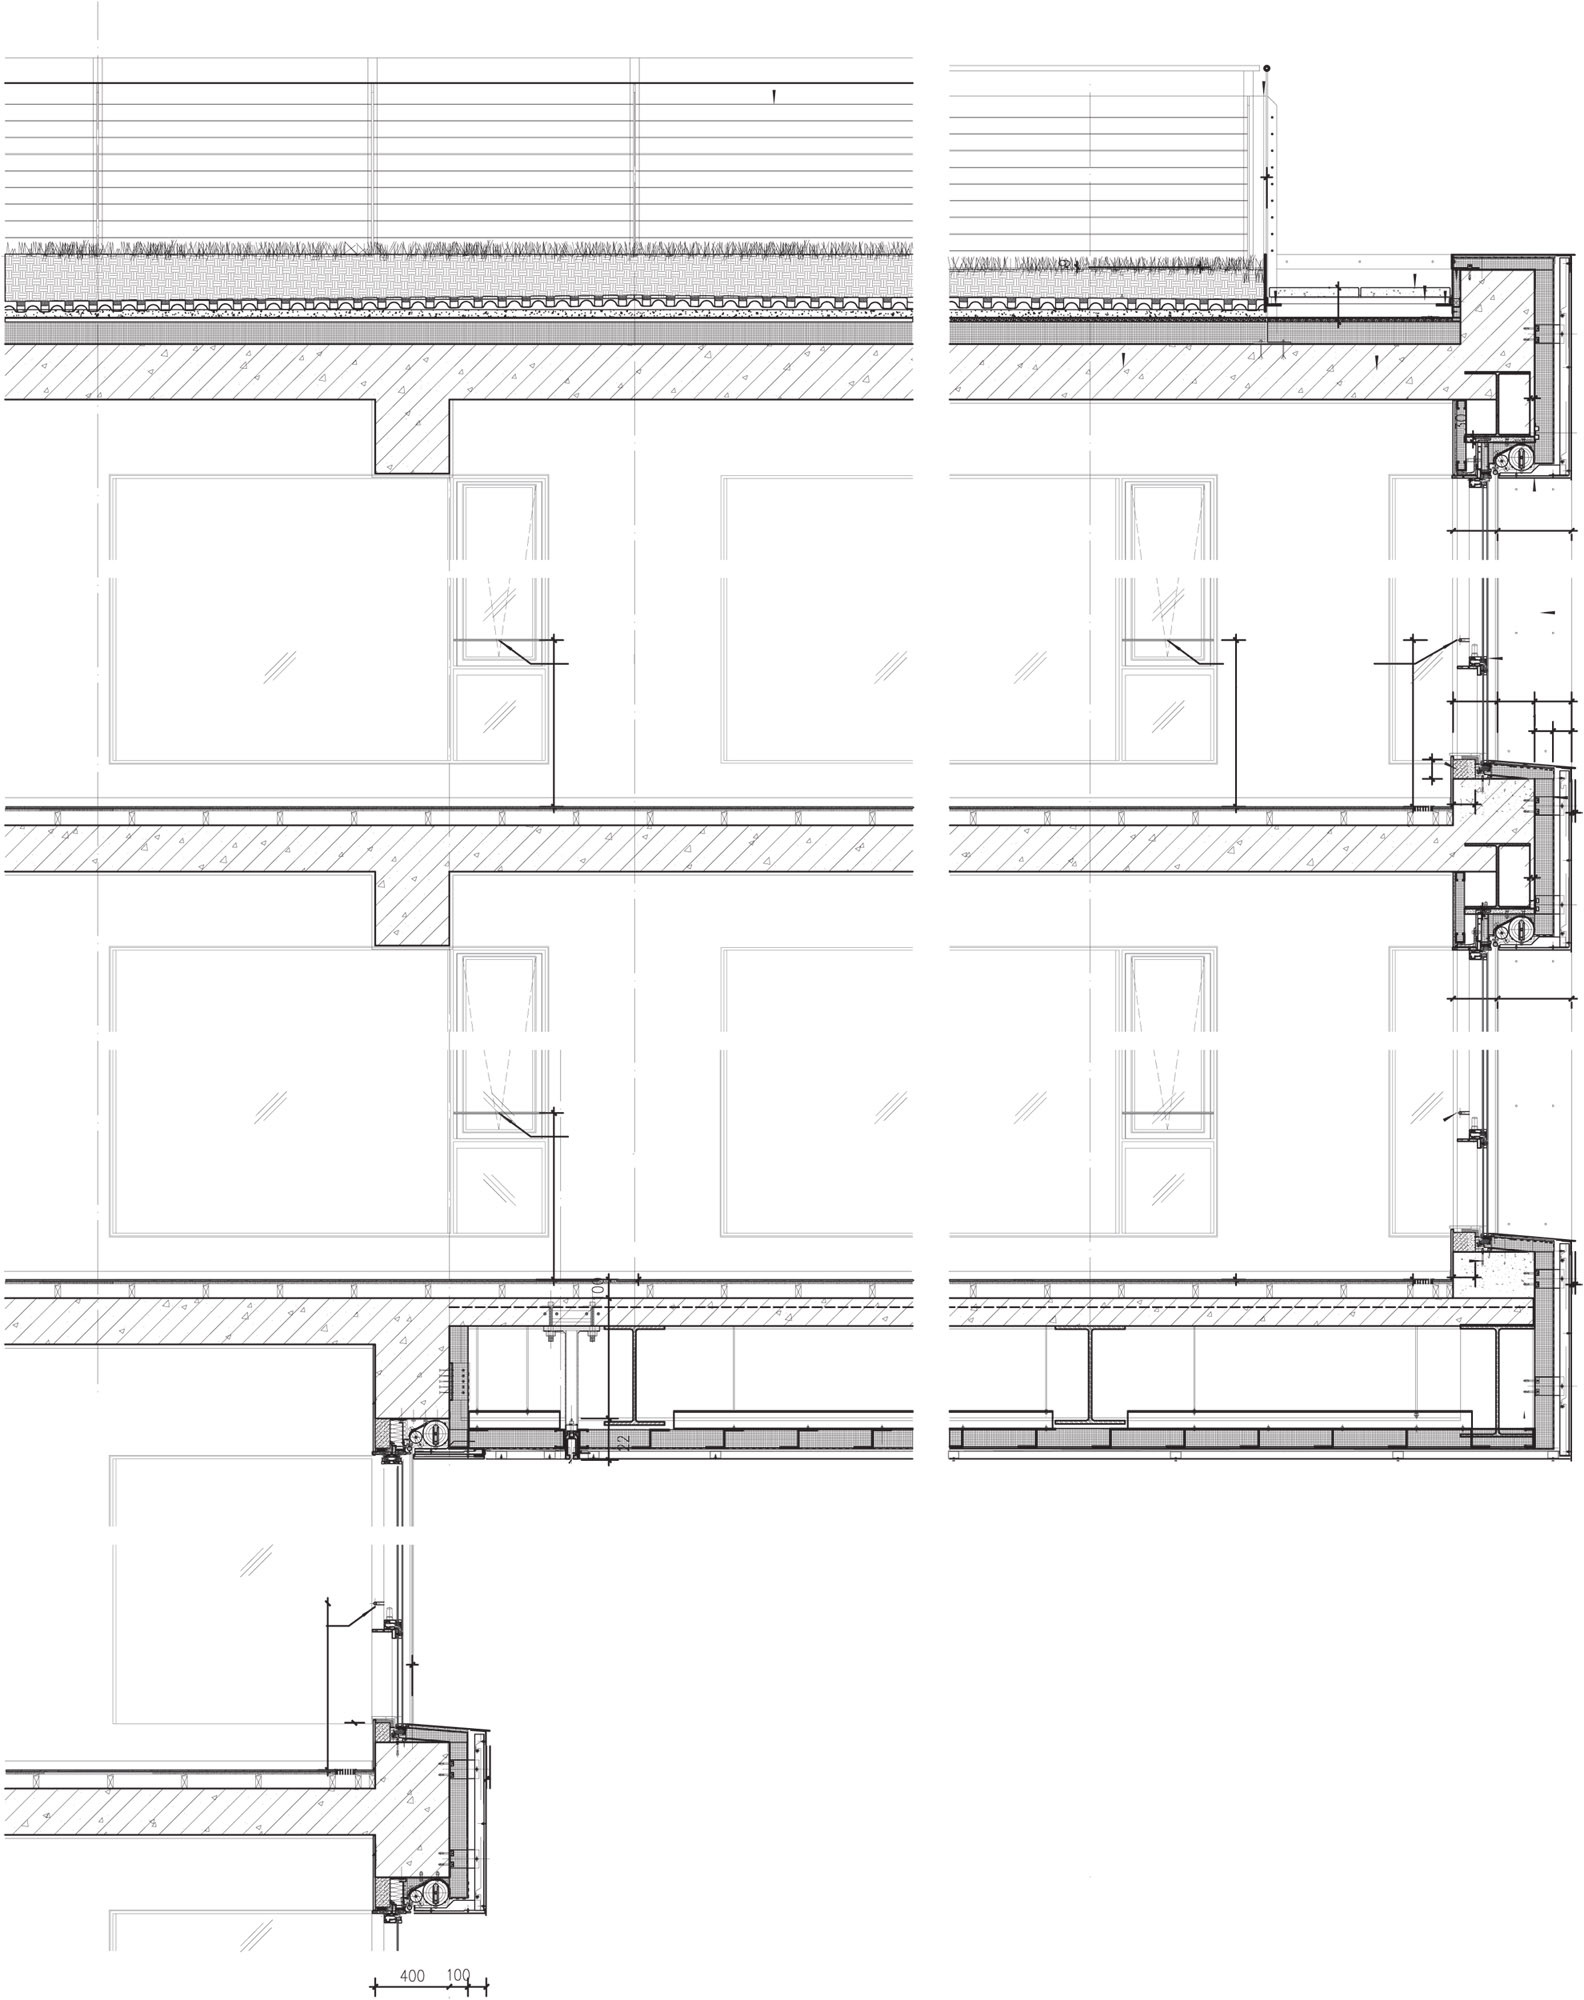 Architectural Design And Drawing Services Glasgow